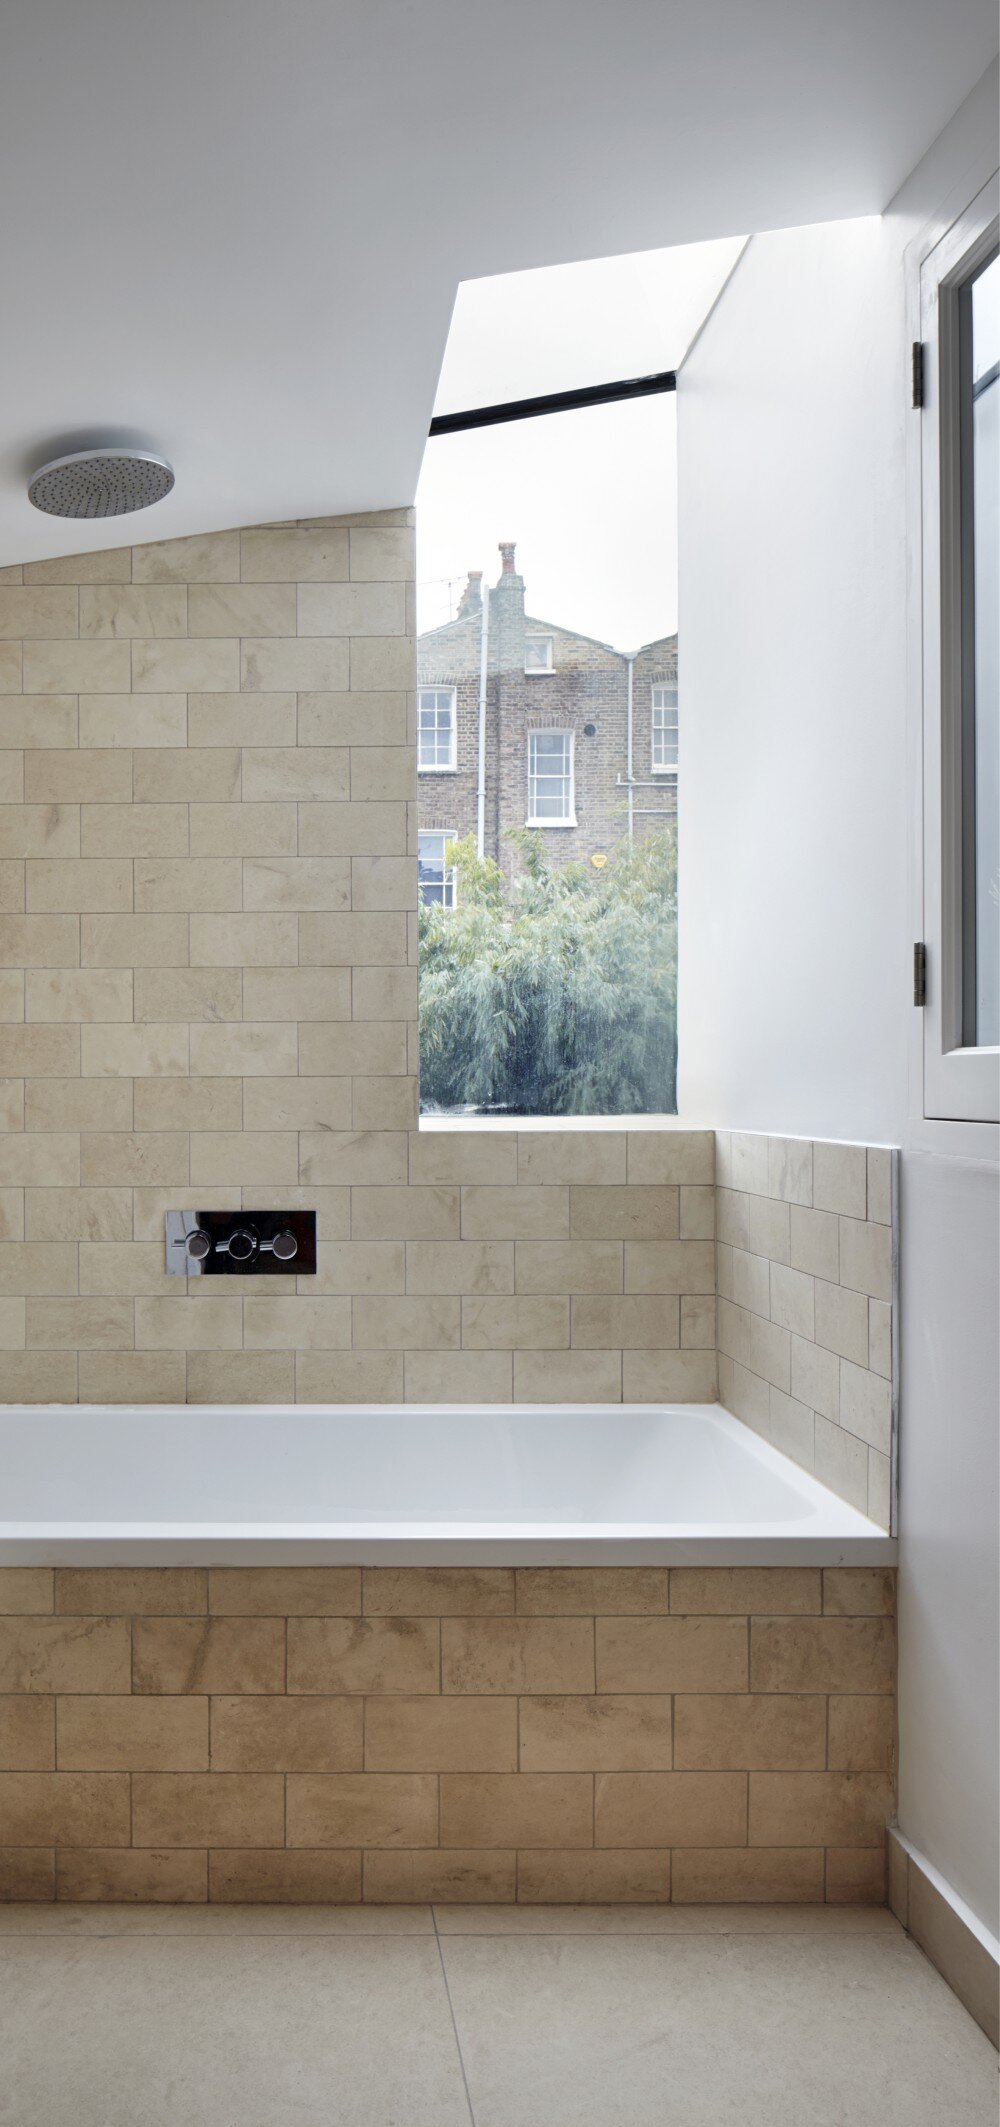 The Brick House - Fraher Architects - London - Bathroom - Humble Homes